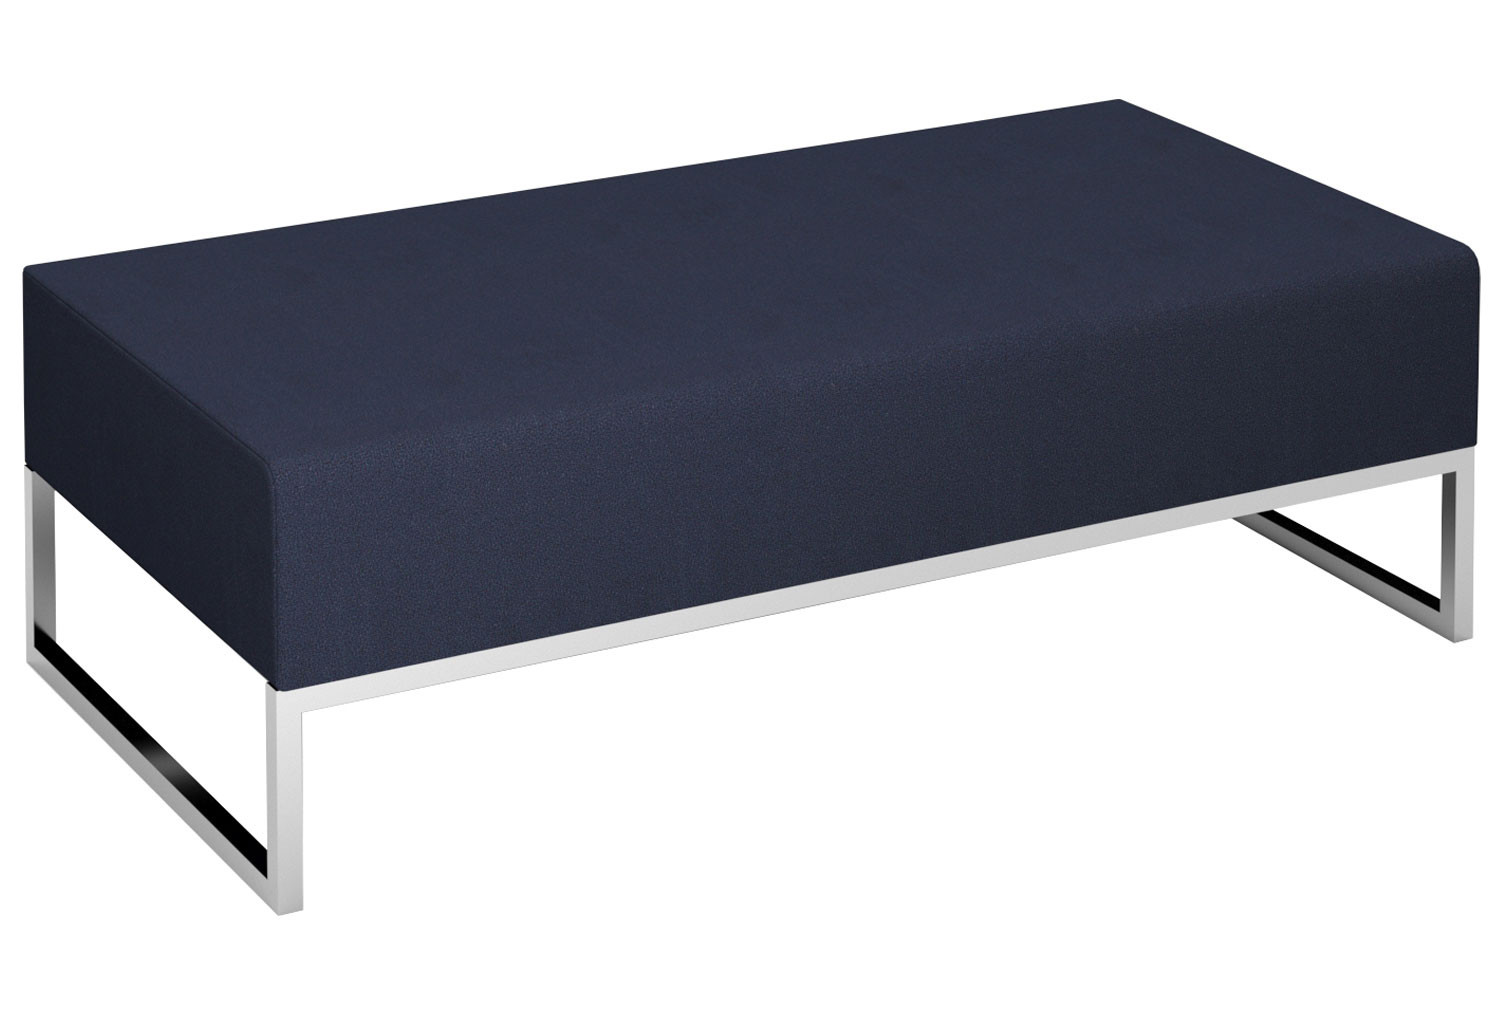 Fuse Modular Seating Double Bench